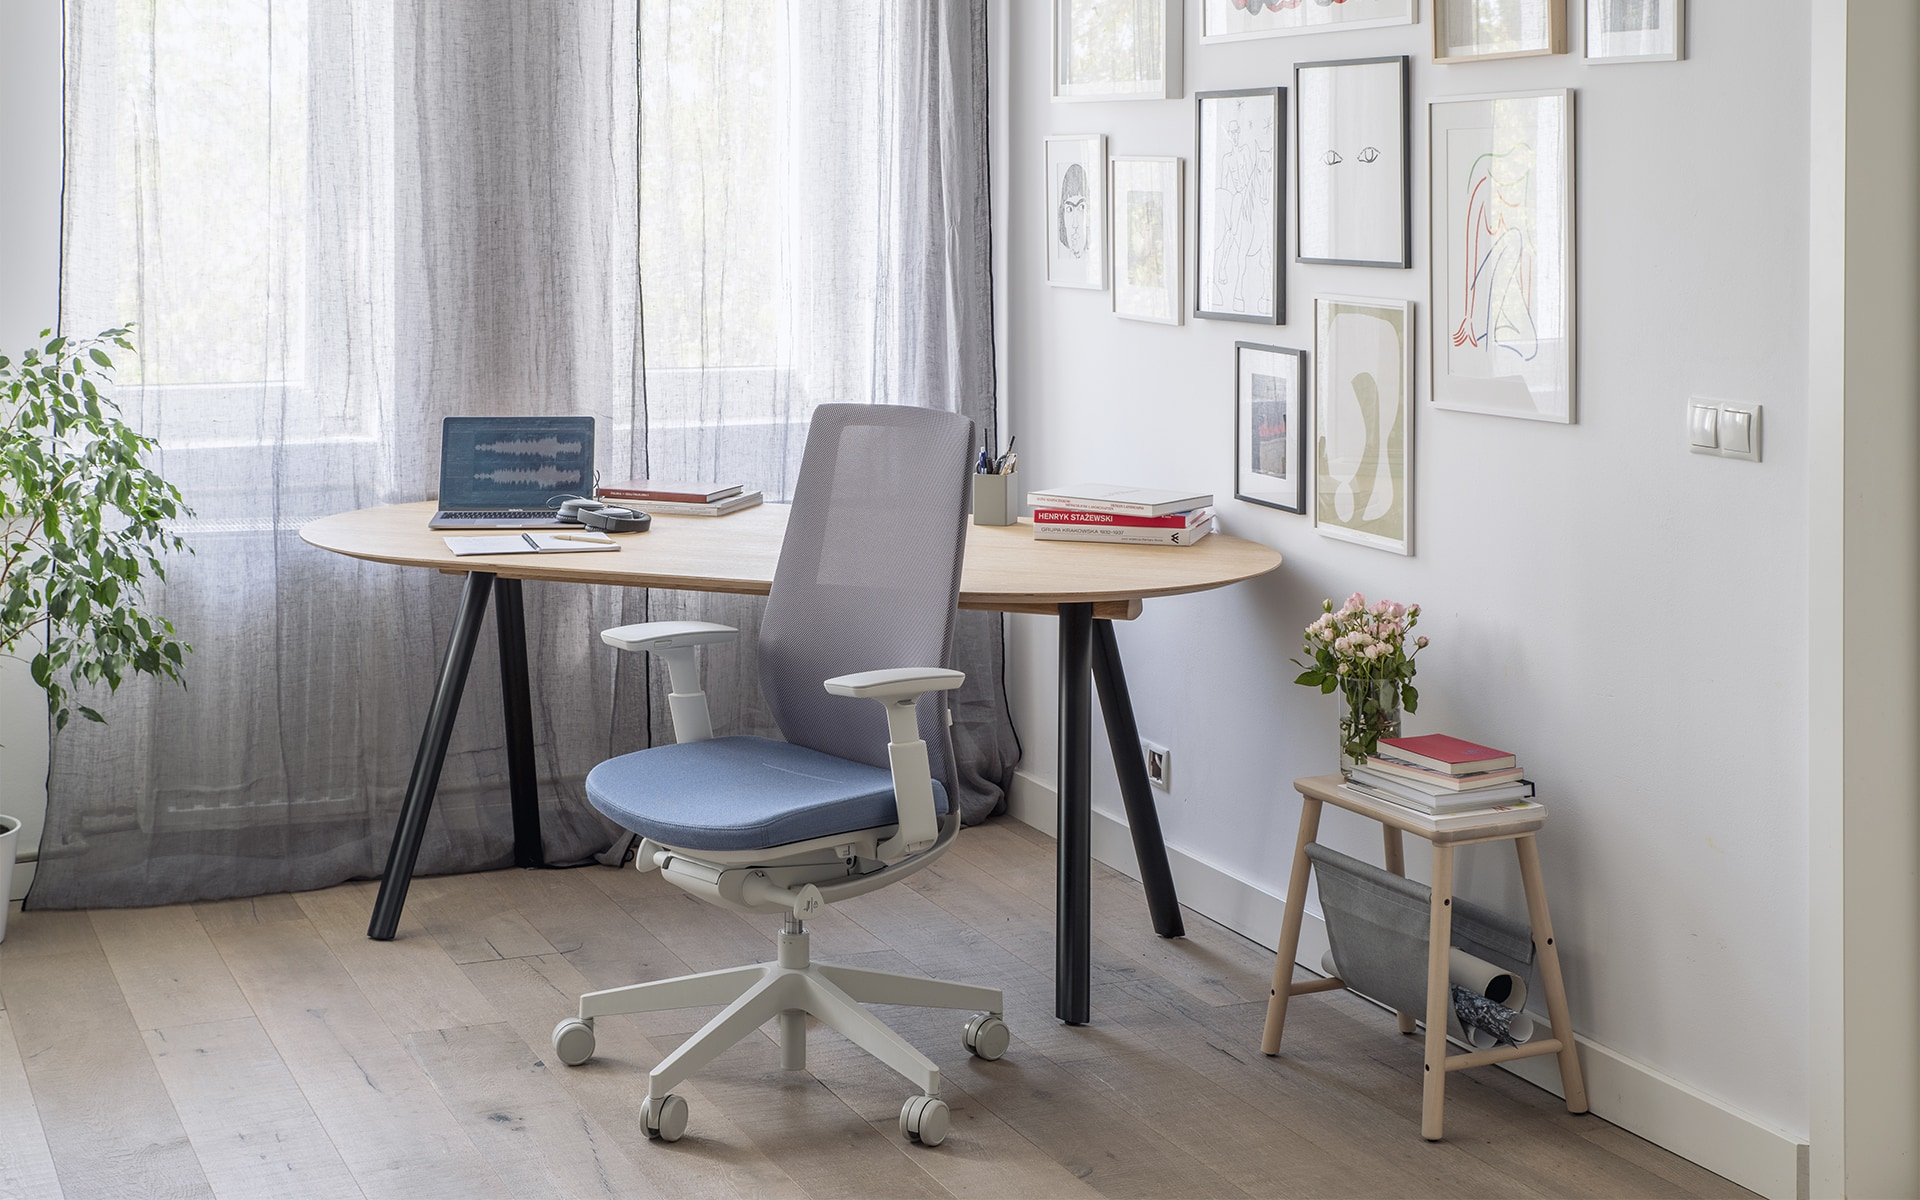 Grey-blue Profim Accis Pro office chair by ITO Design in comfy home office